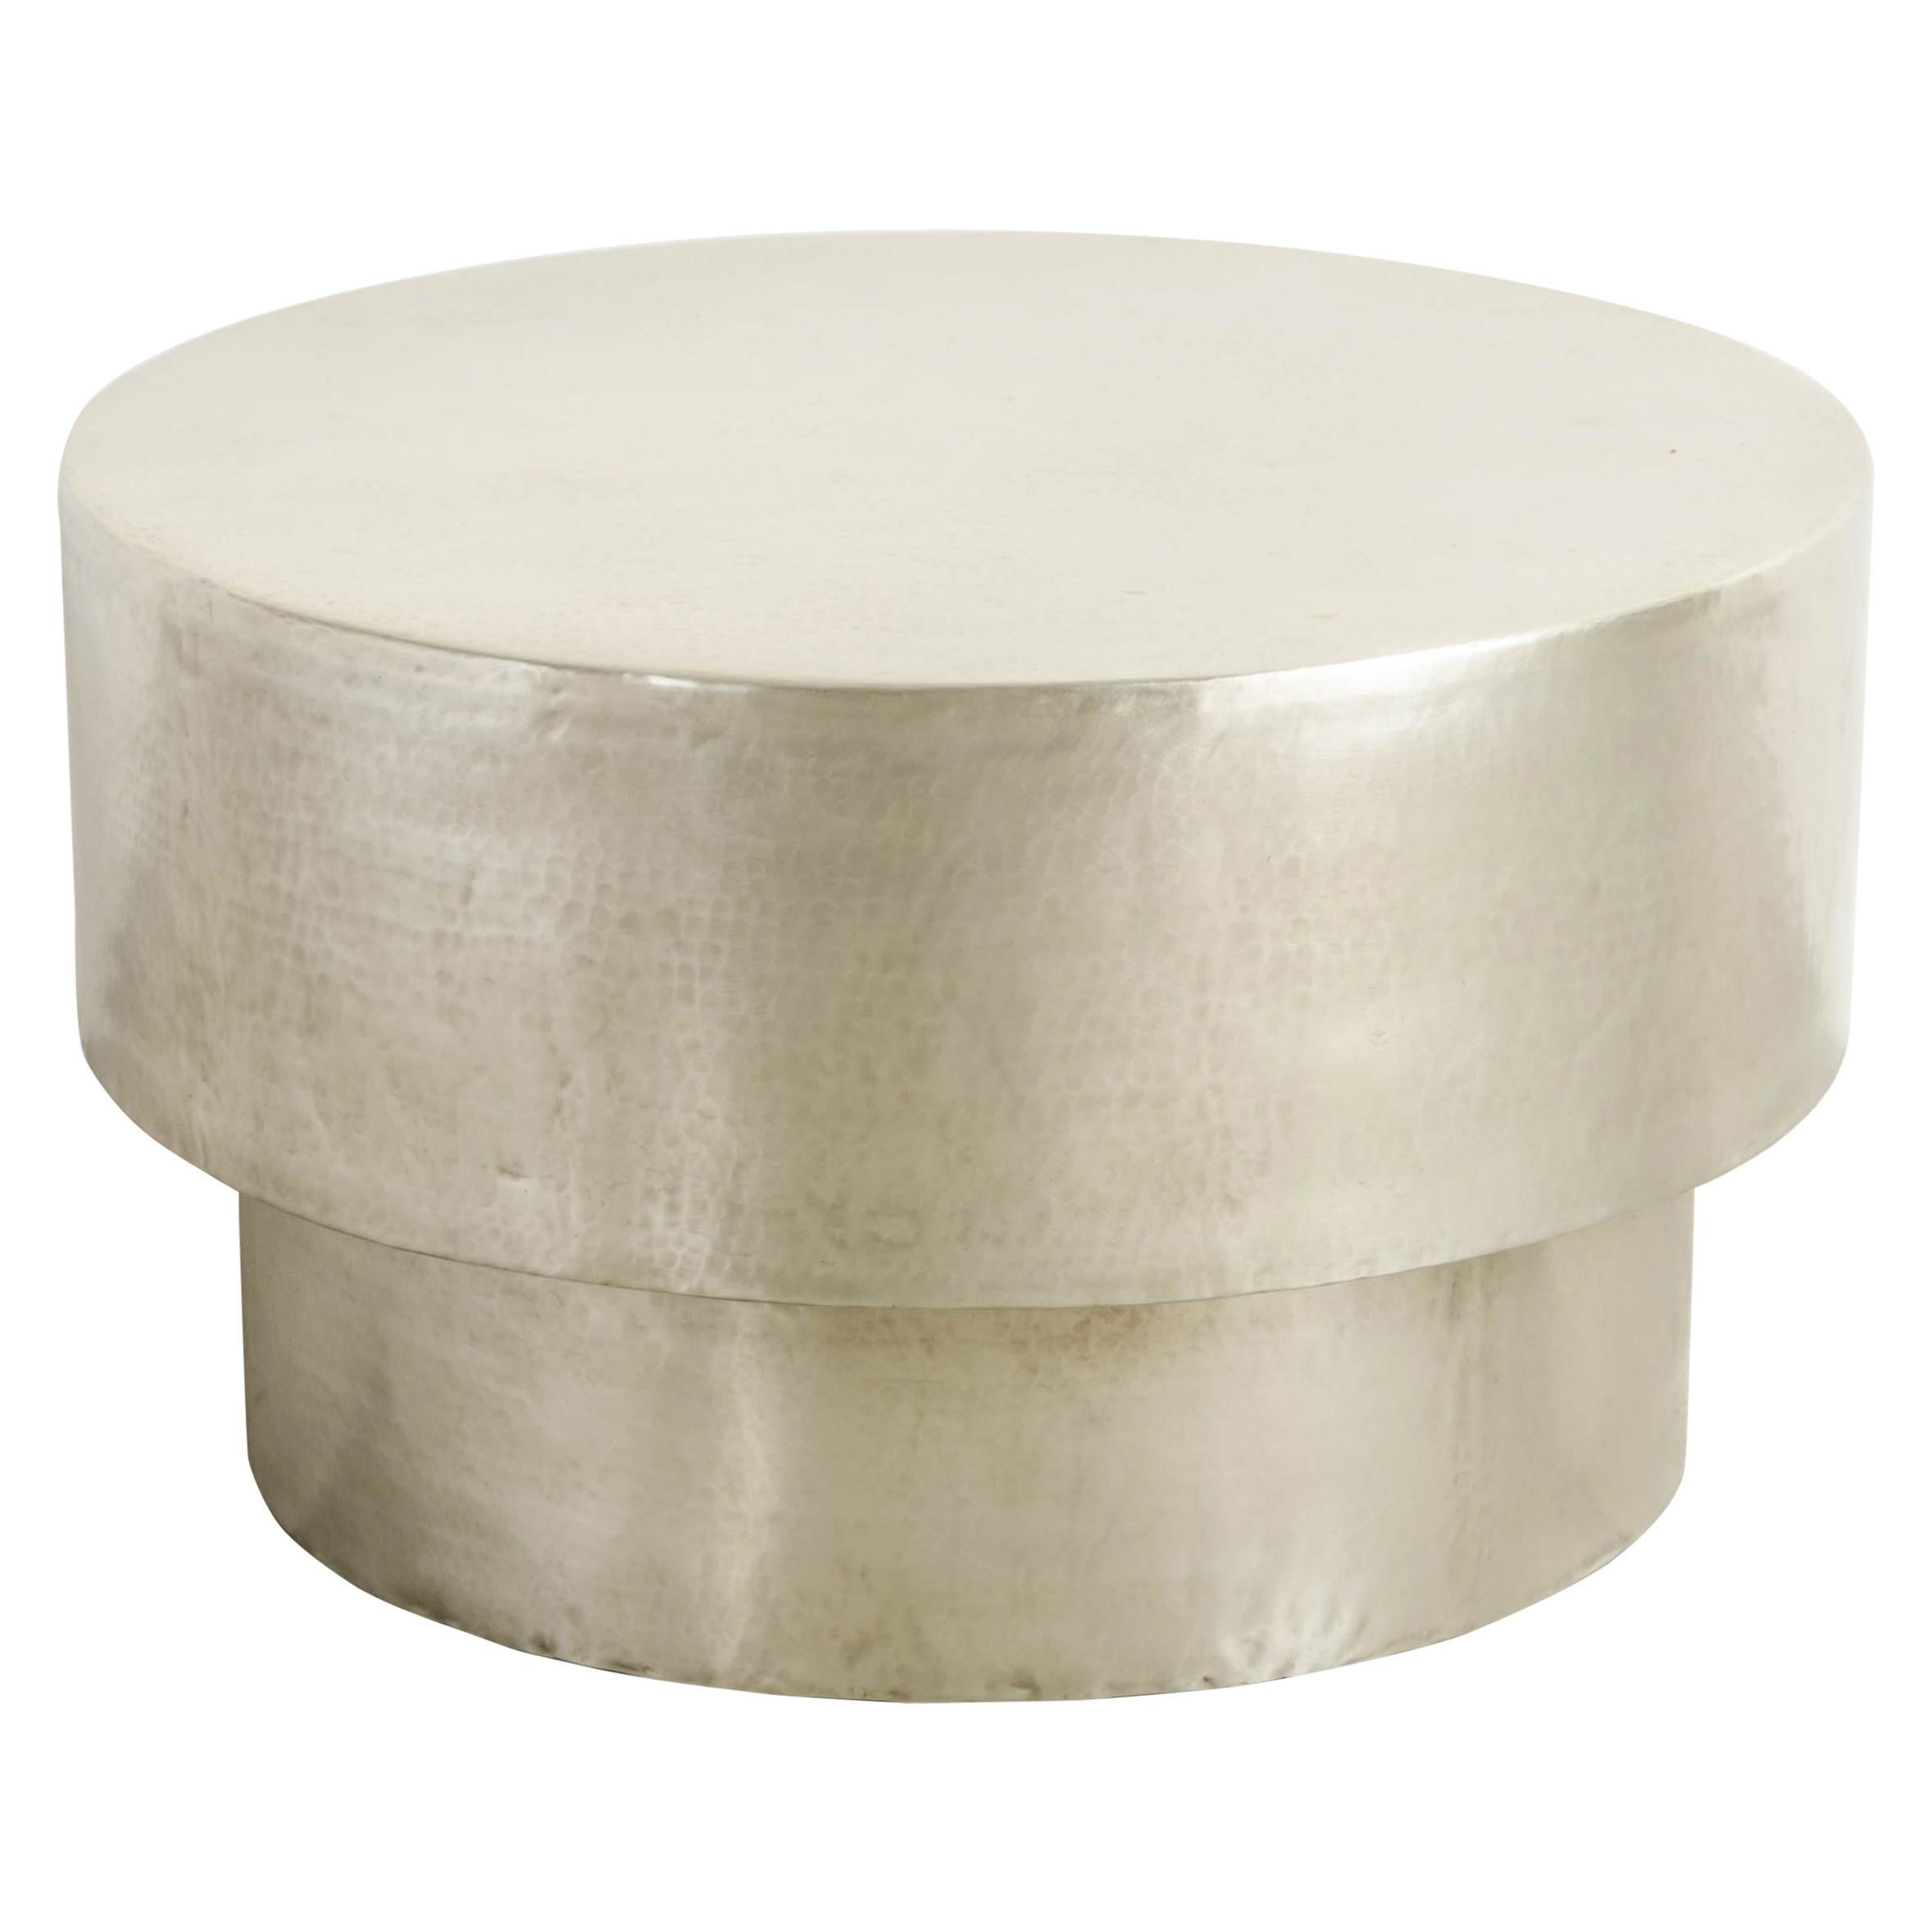 Drum Table in White Bronze by Robert Kuo, Limited Edition